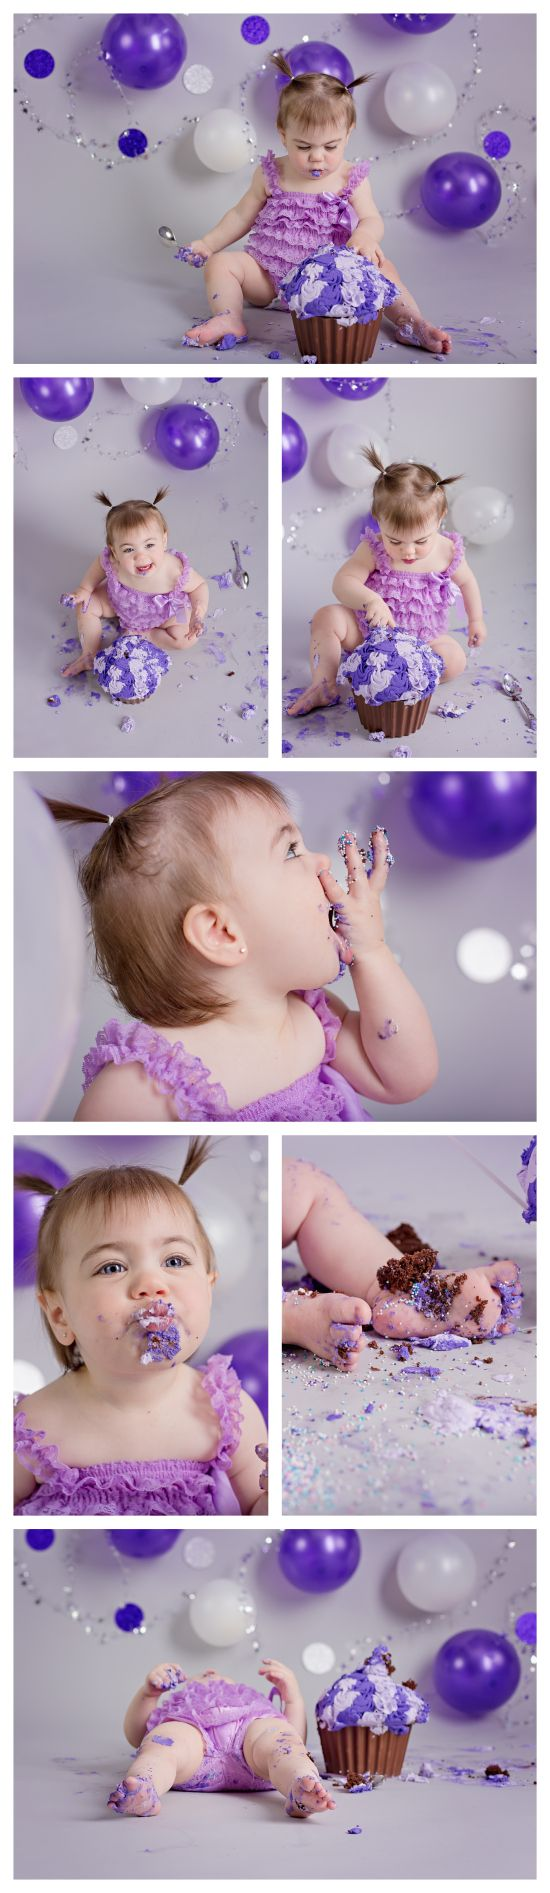 Cake Smash and sprinkles! #cakesmash #kids #1stbirthday #firstbirthday #photography